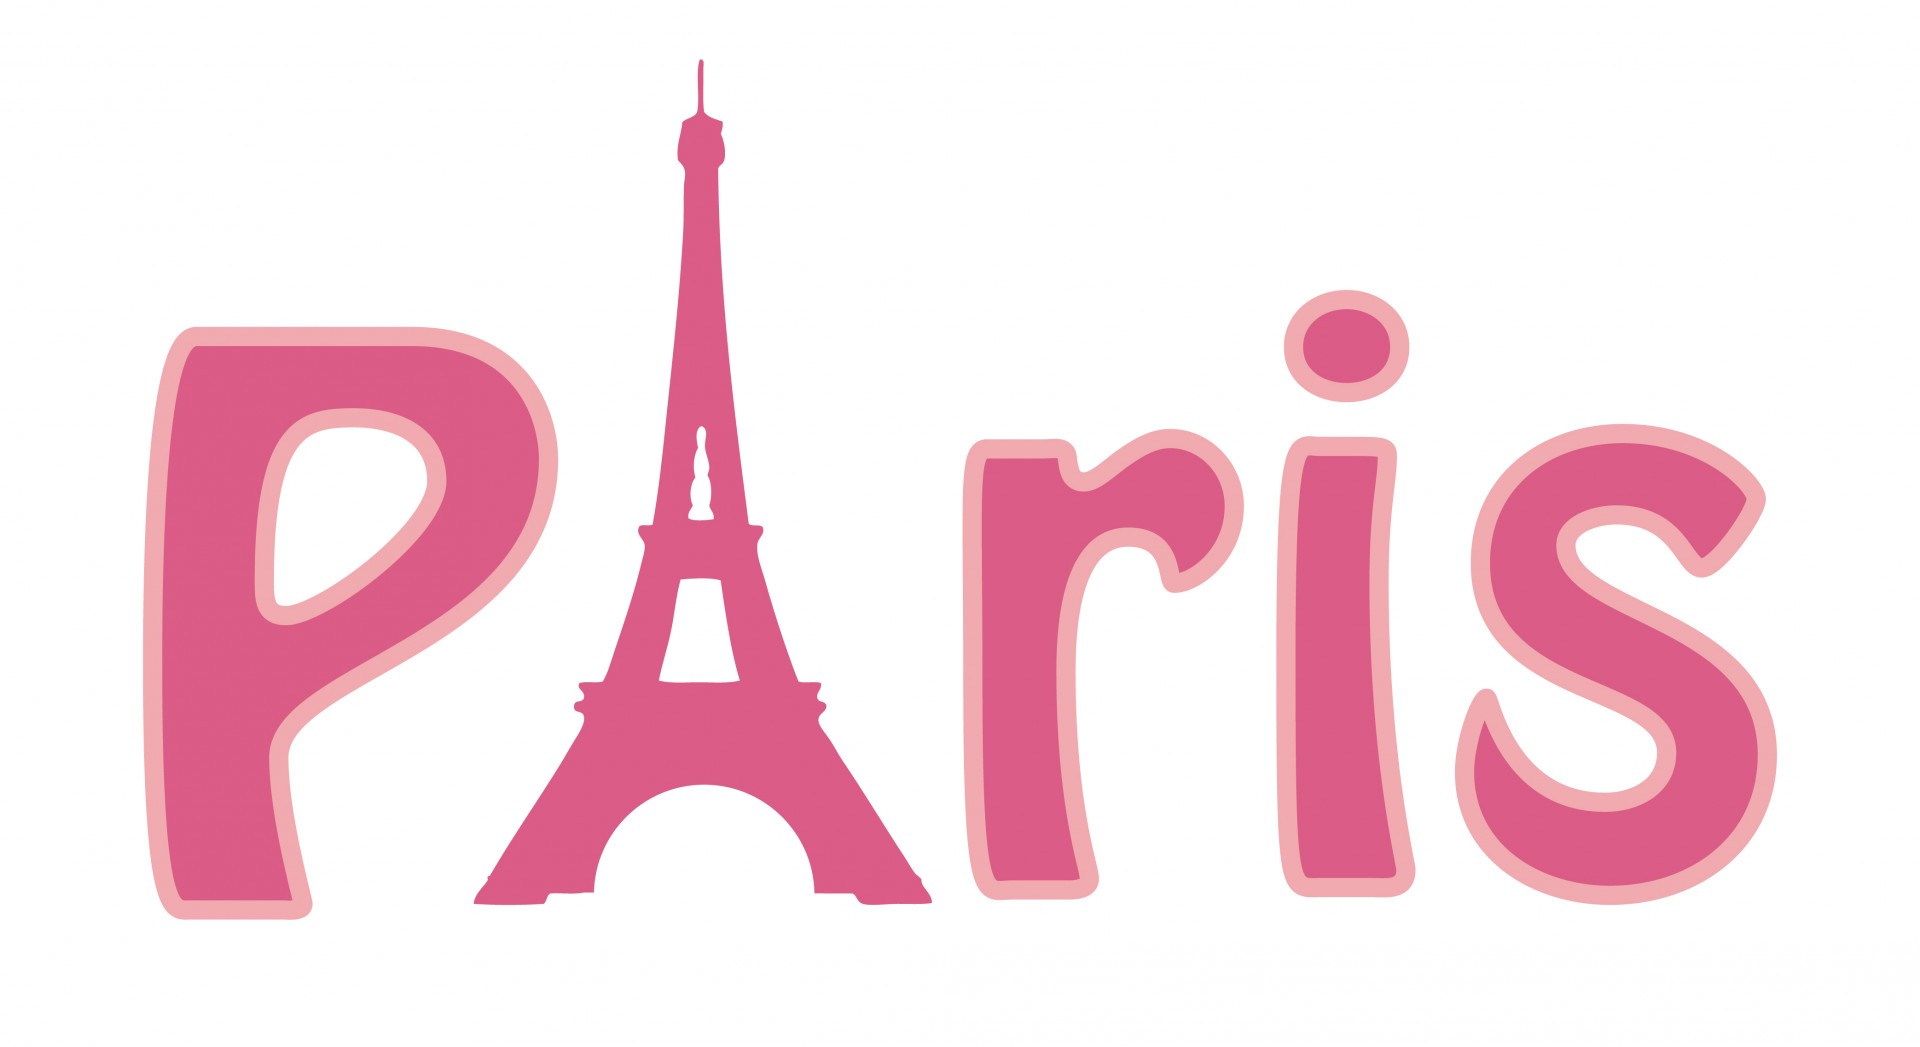 Paris clipart #18, Download drawings